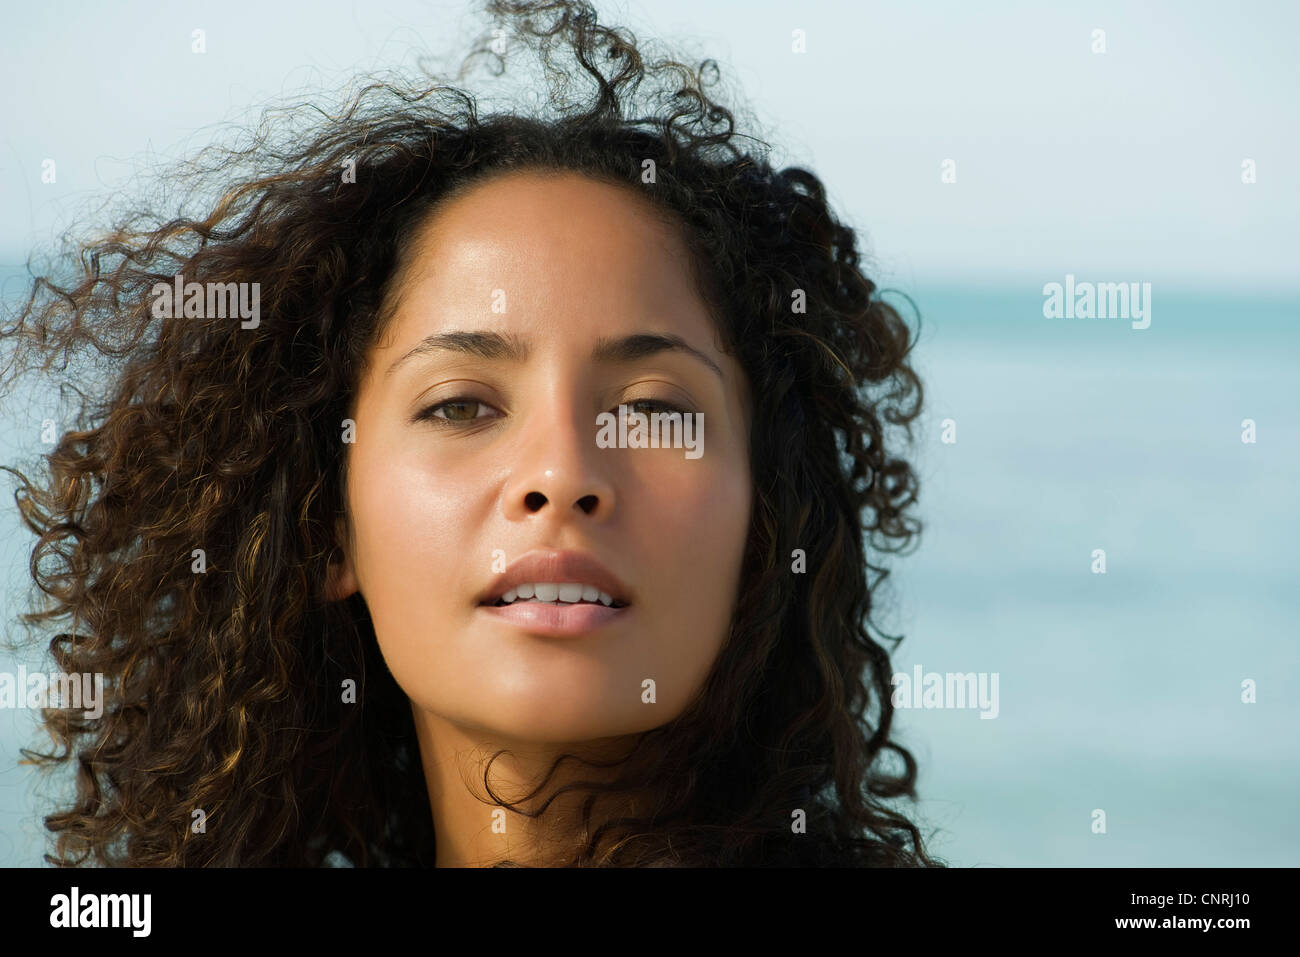 Woman with hair tousled by breeze, portrait - Stock Image